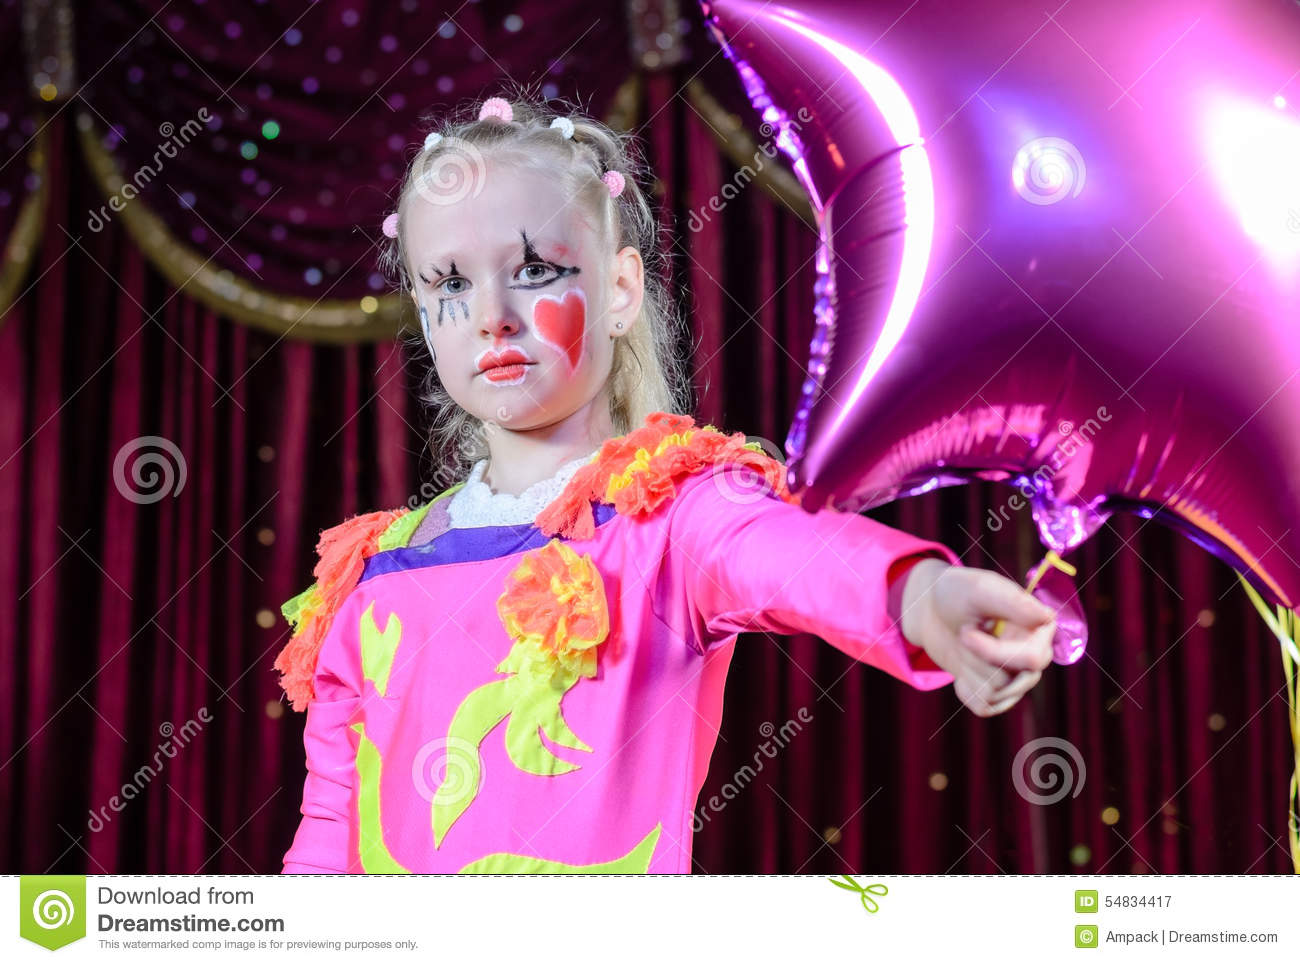 Costume holding star shaped balloon on stage in front of red curtain